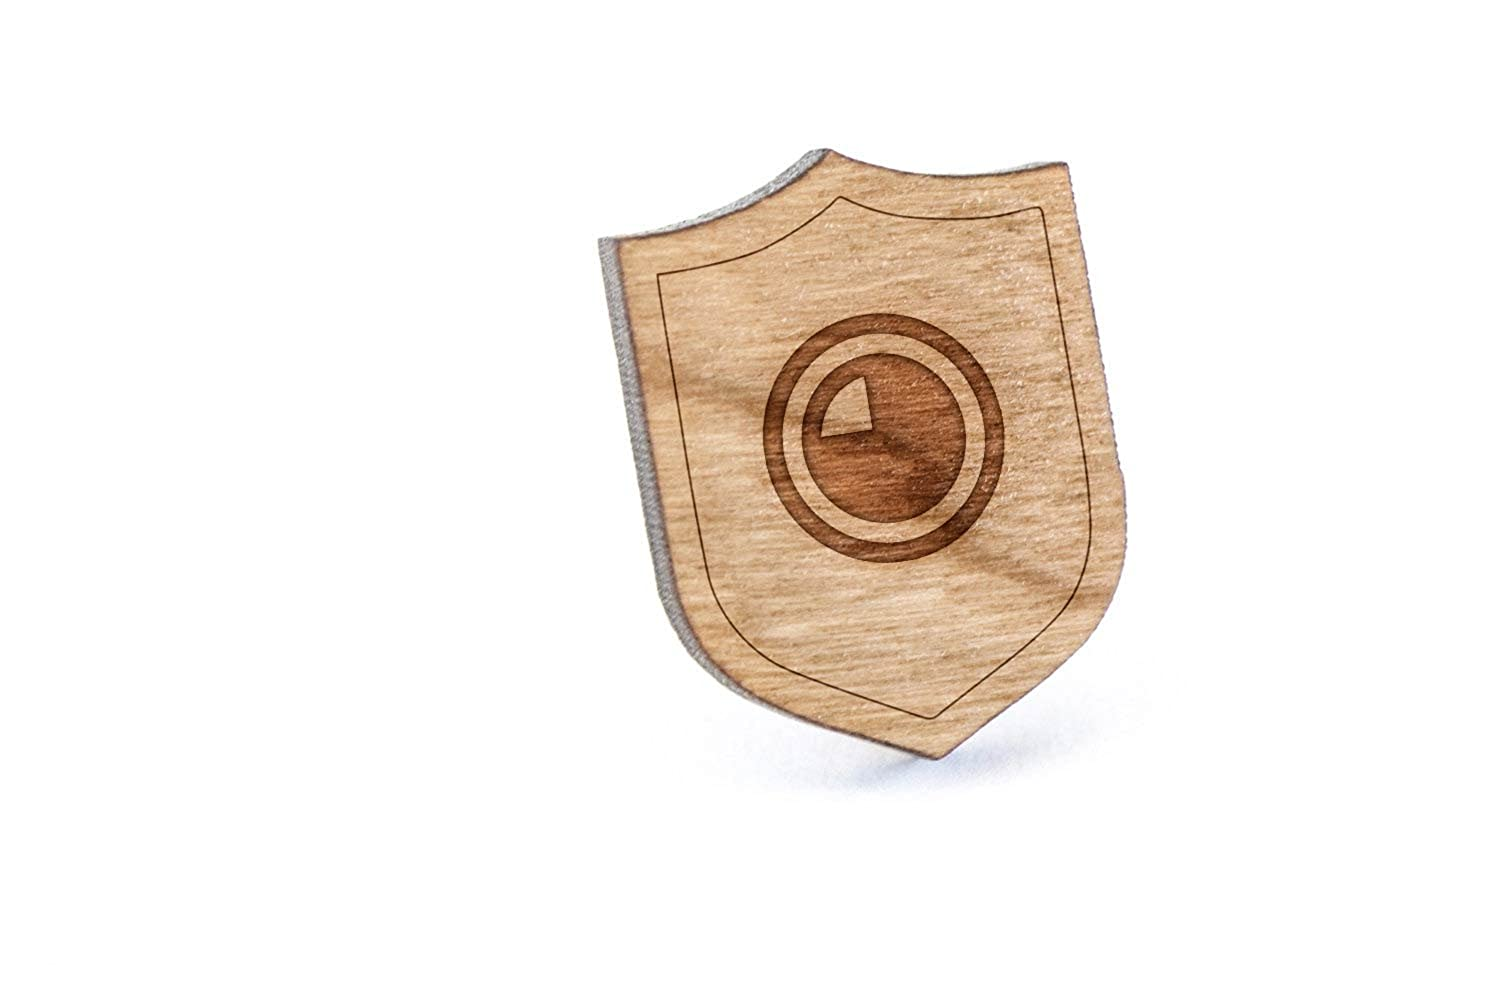 Quarter Portion Lapel Pin, Wooden Pin And Tie Tack   Rustic And Minimalistic Groomsmen Gifts And Wedding Accessories